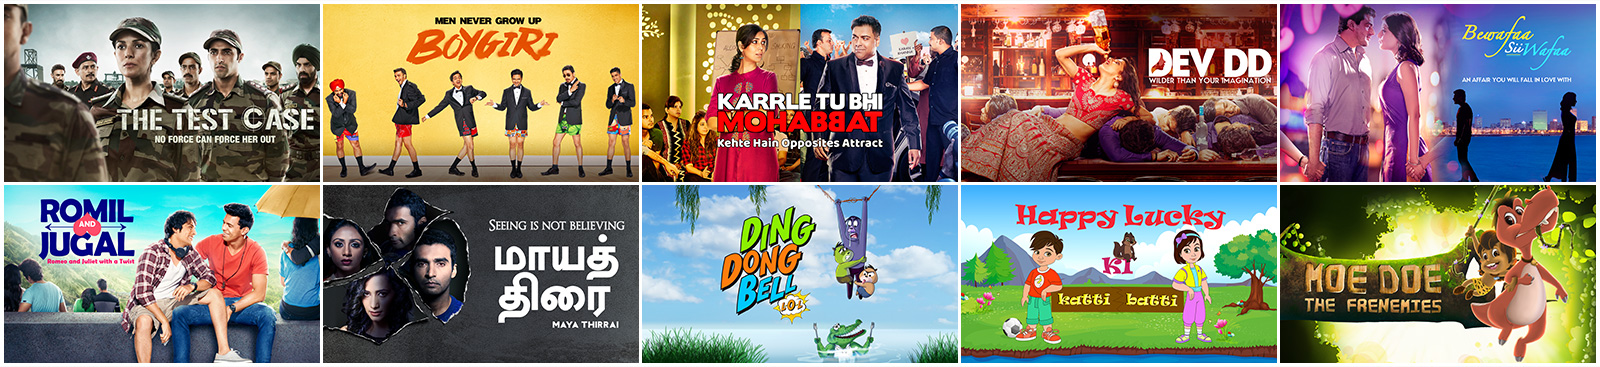 Watch original shows, kids exclusives and more on ALTBalaji